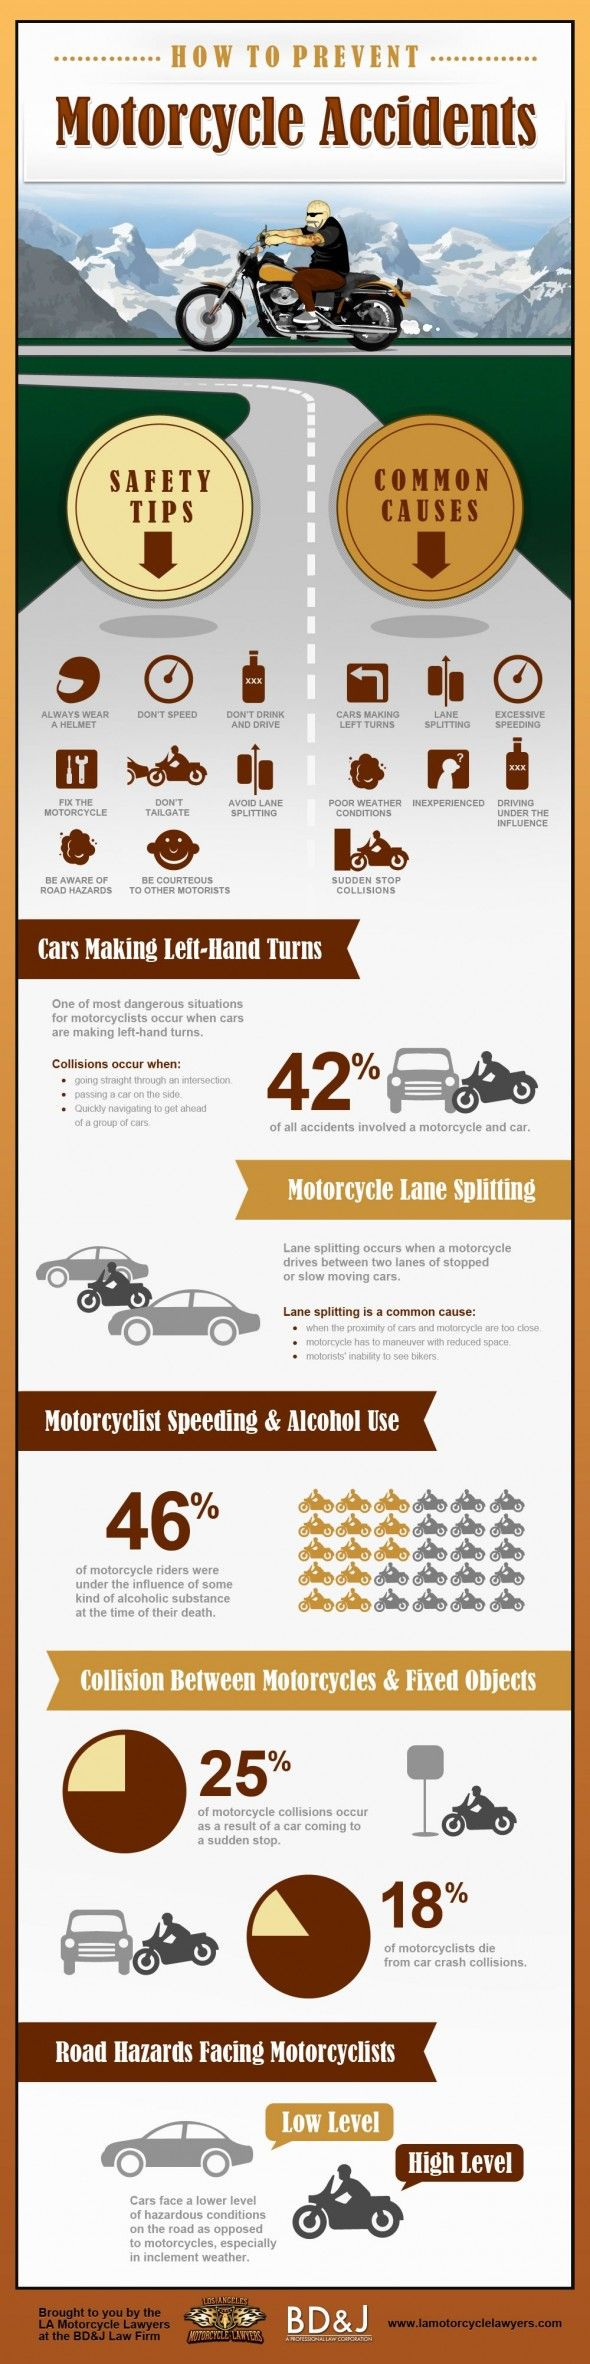 Safety Tips to Prevent Common Causes of Motorcycle Accidents - Almost half of all motorcycle accidents occur when they collide with cars. Fundamental safety tips, such as paying attention to road hazards and maintaining a safe speed, can reduce some of the common causes of collisions and deaths.